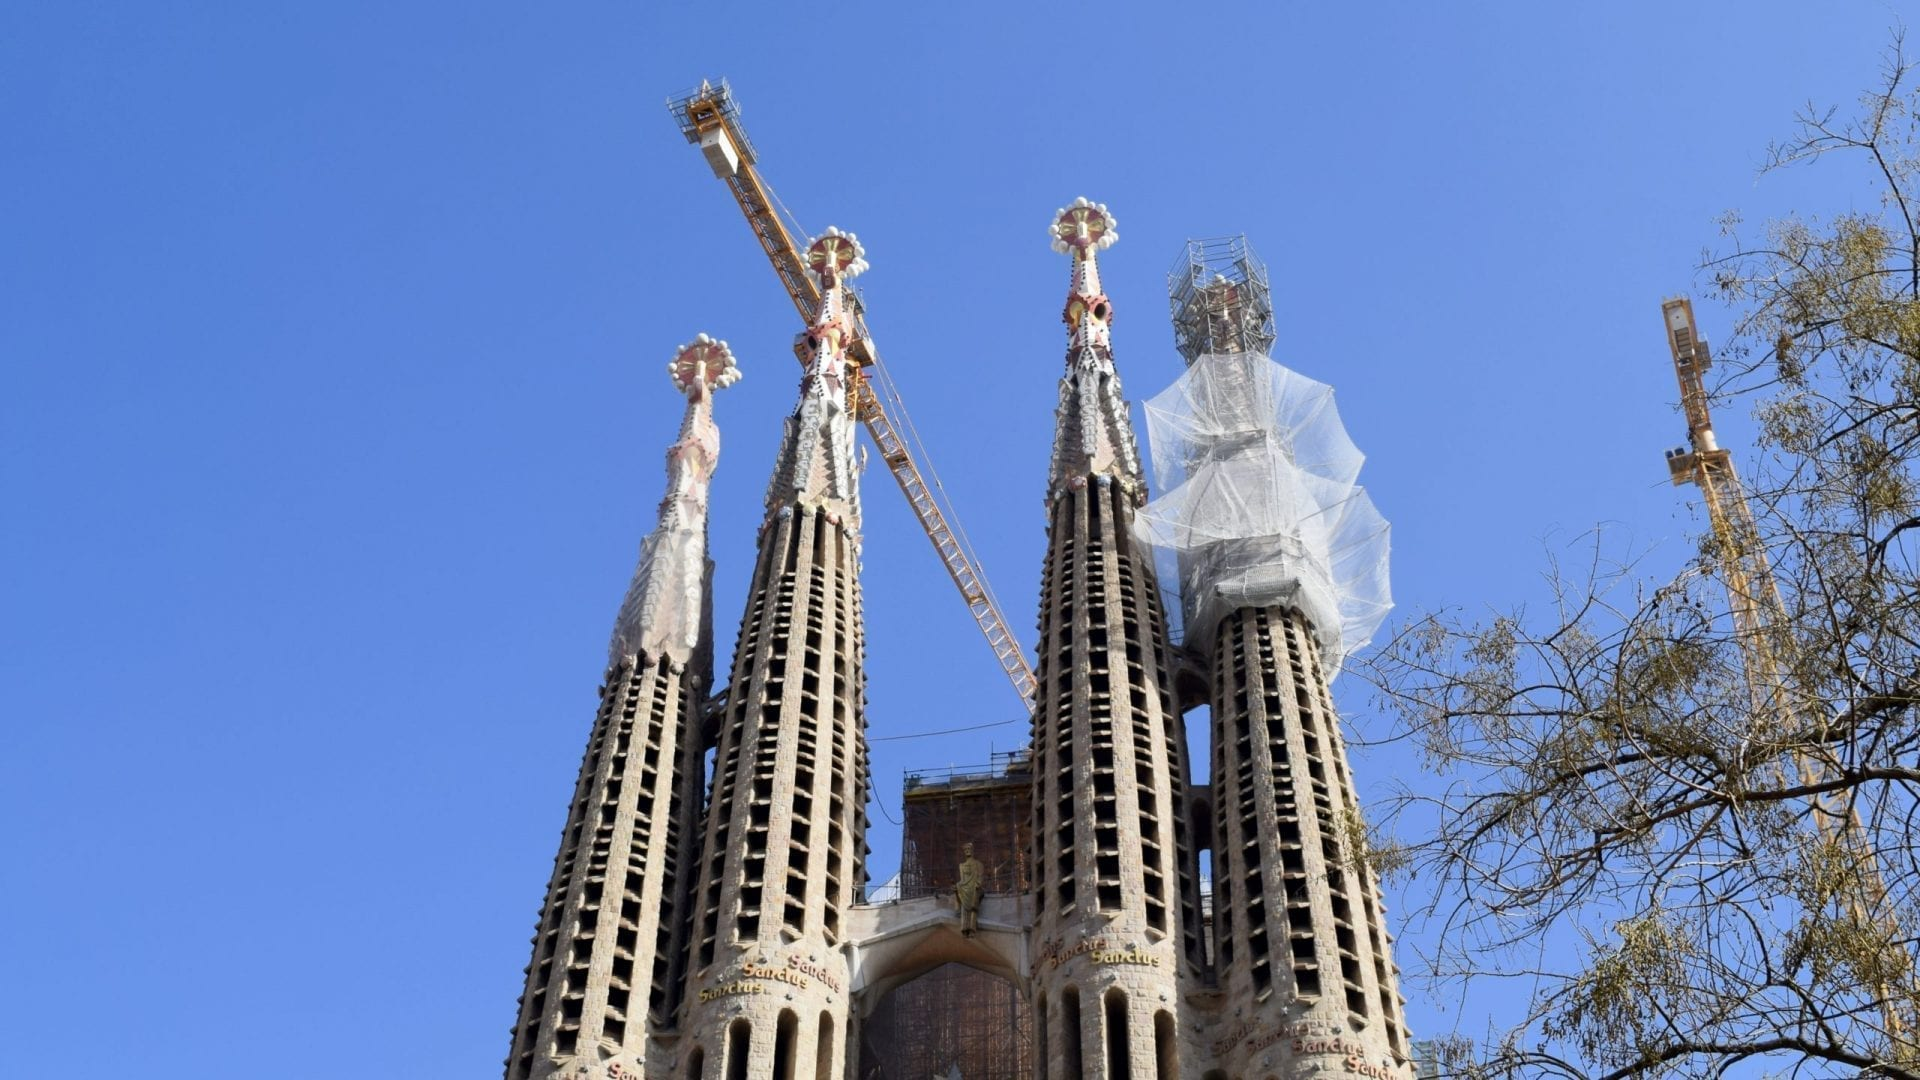 Outside view of Sagrada Familia